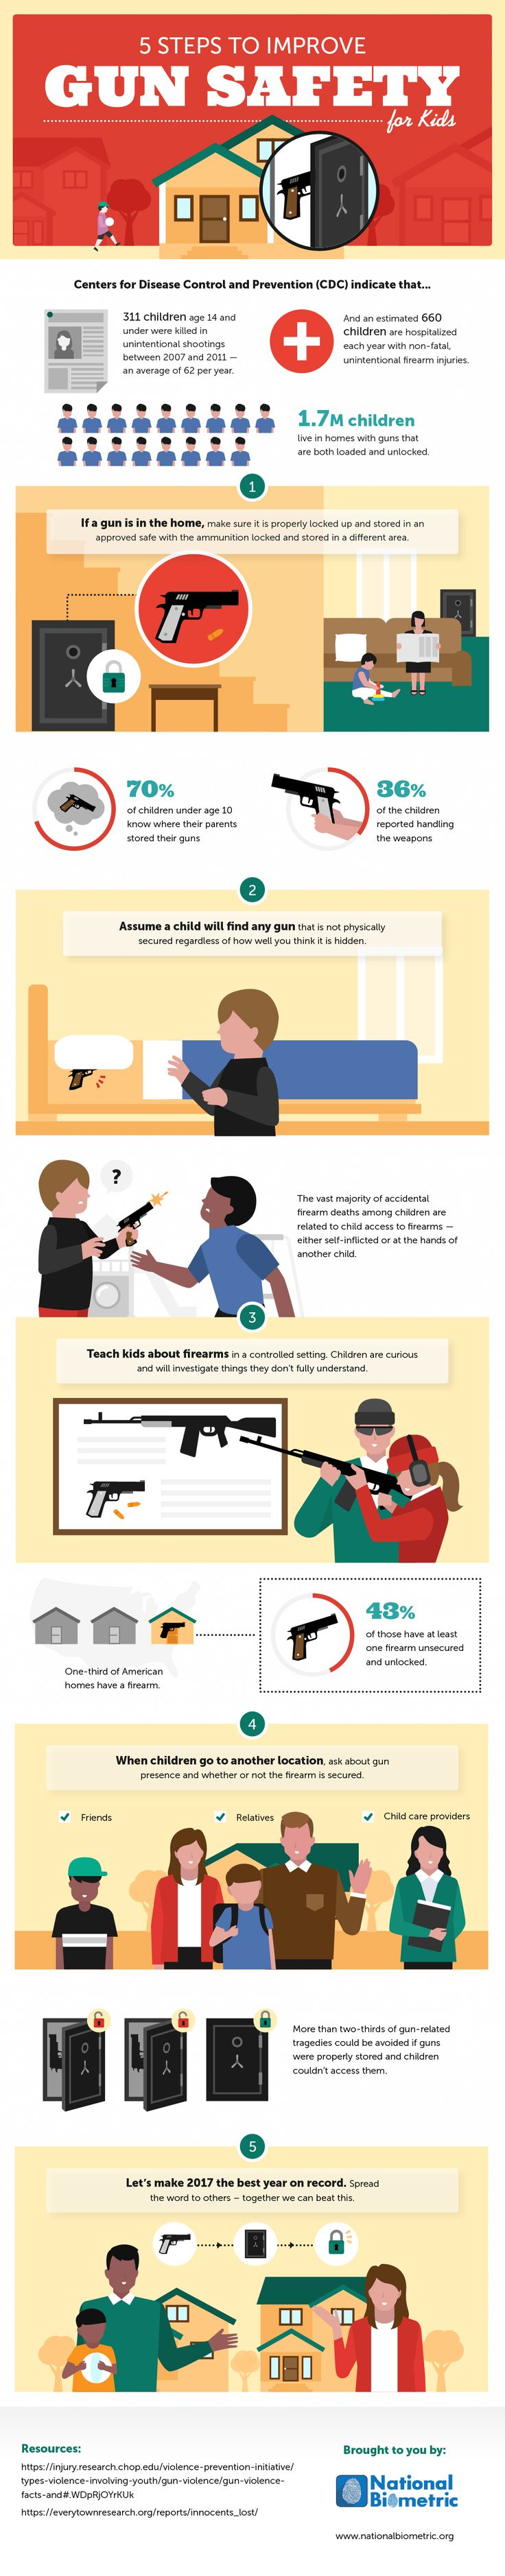 5 Steps To Improving Gun Safety For Kids